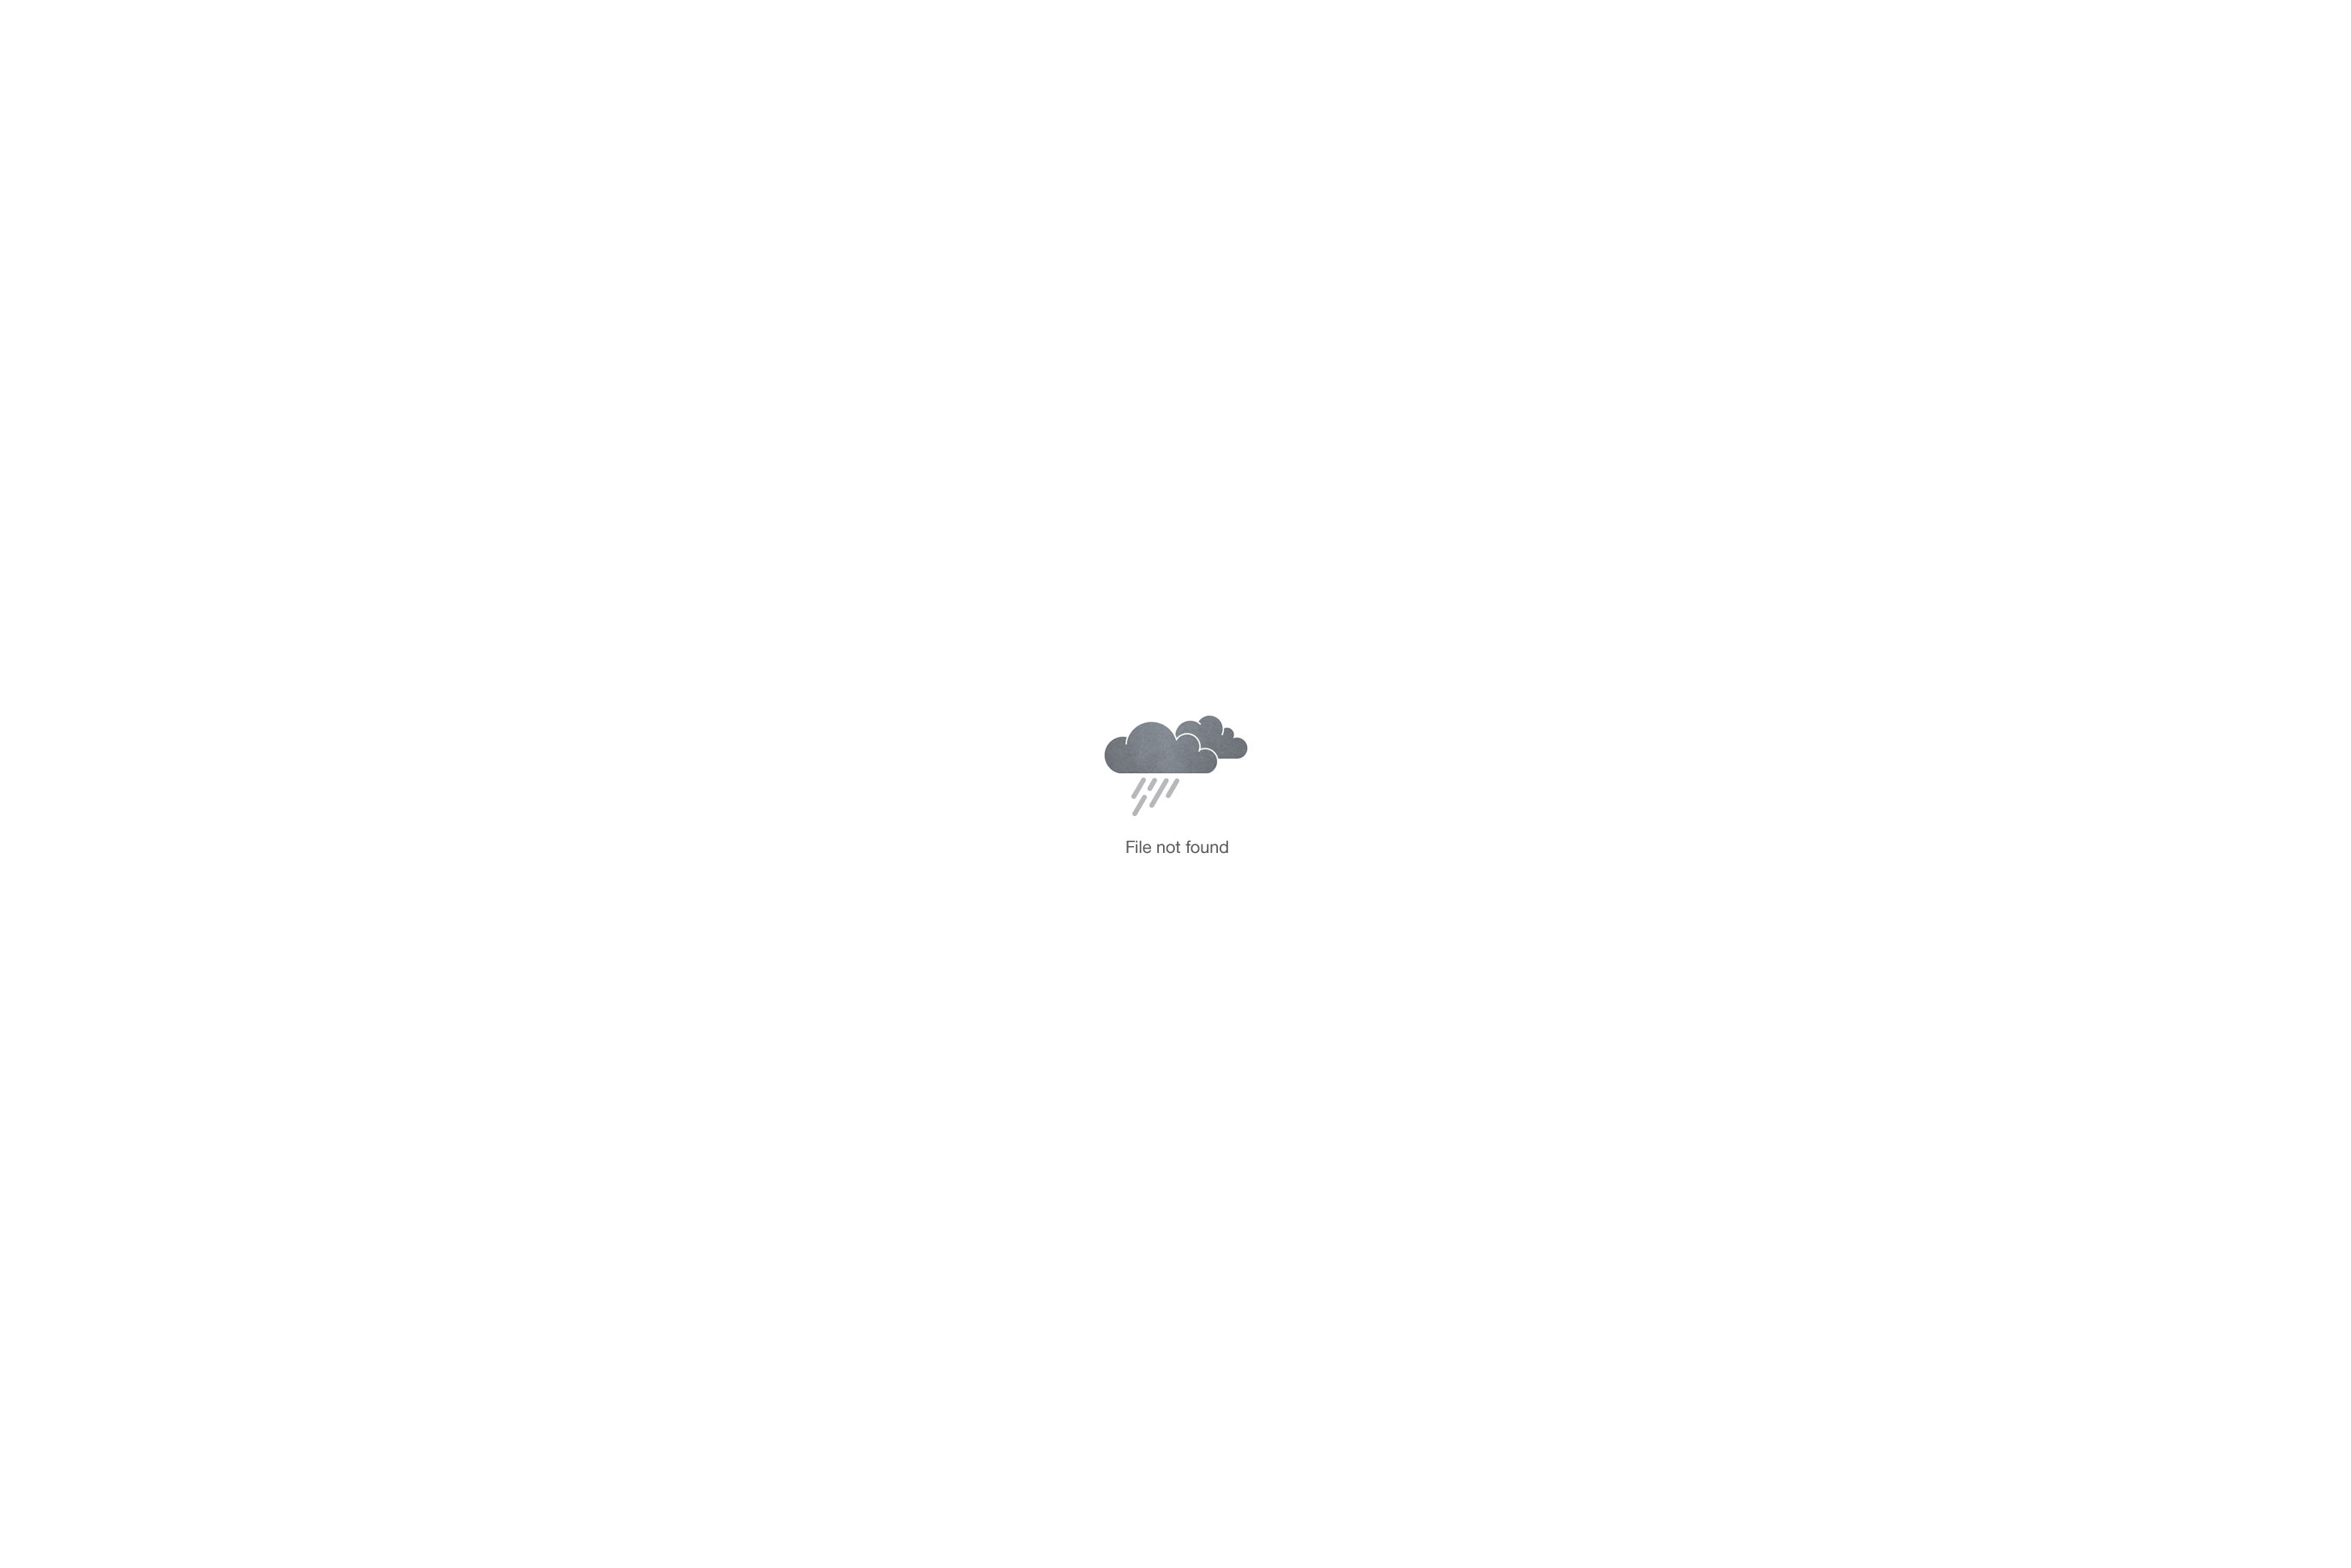 Peter-Gore-Rugby-Sponsorise-me-image-1